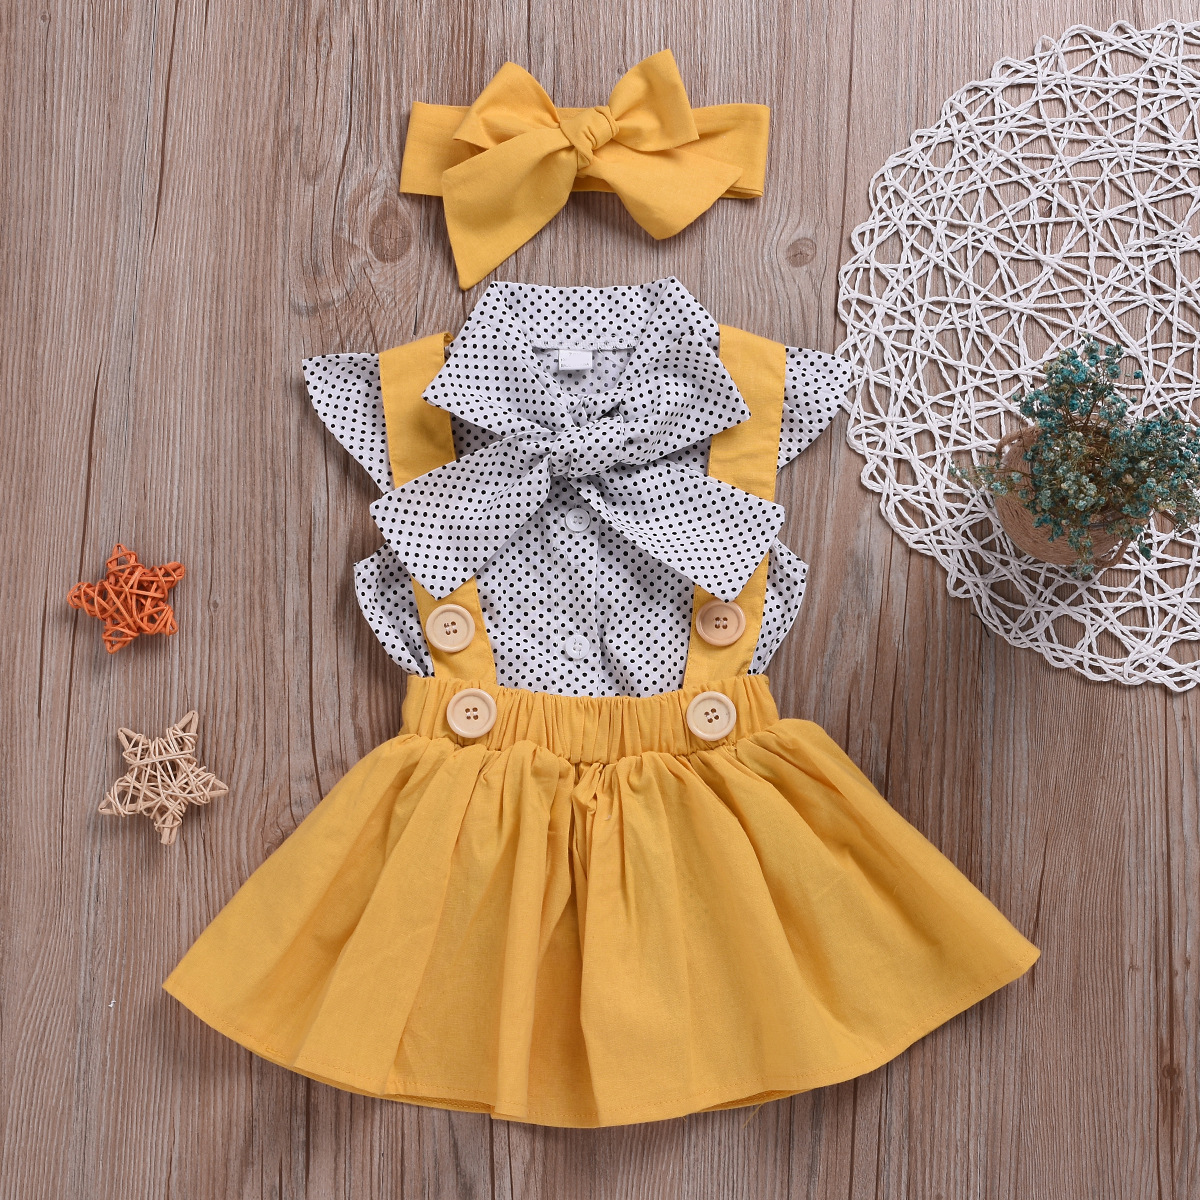 HTB1C s4d75E3KVjSZFCq6zuzXXa5 - Humor Bear Baby Girl Clothes Hot Summer Children's Girls' Clothing Sets Kids Bay clothes Toddler Chiffon bowknot coat+Pants 1-4Y